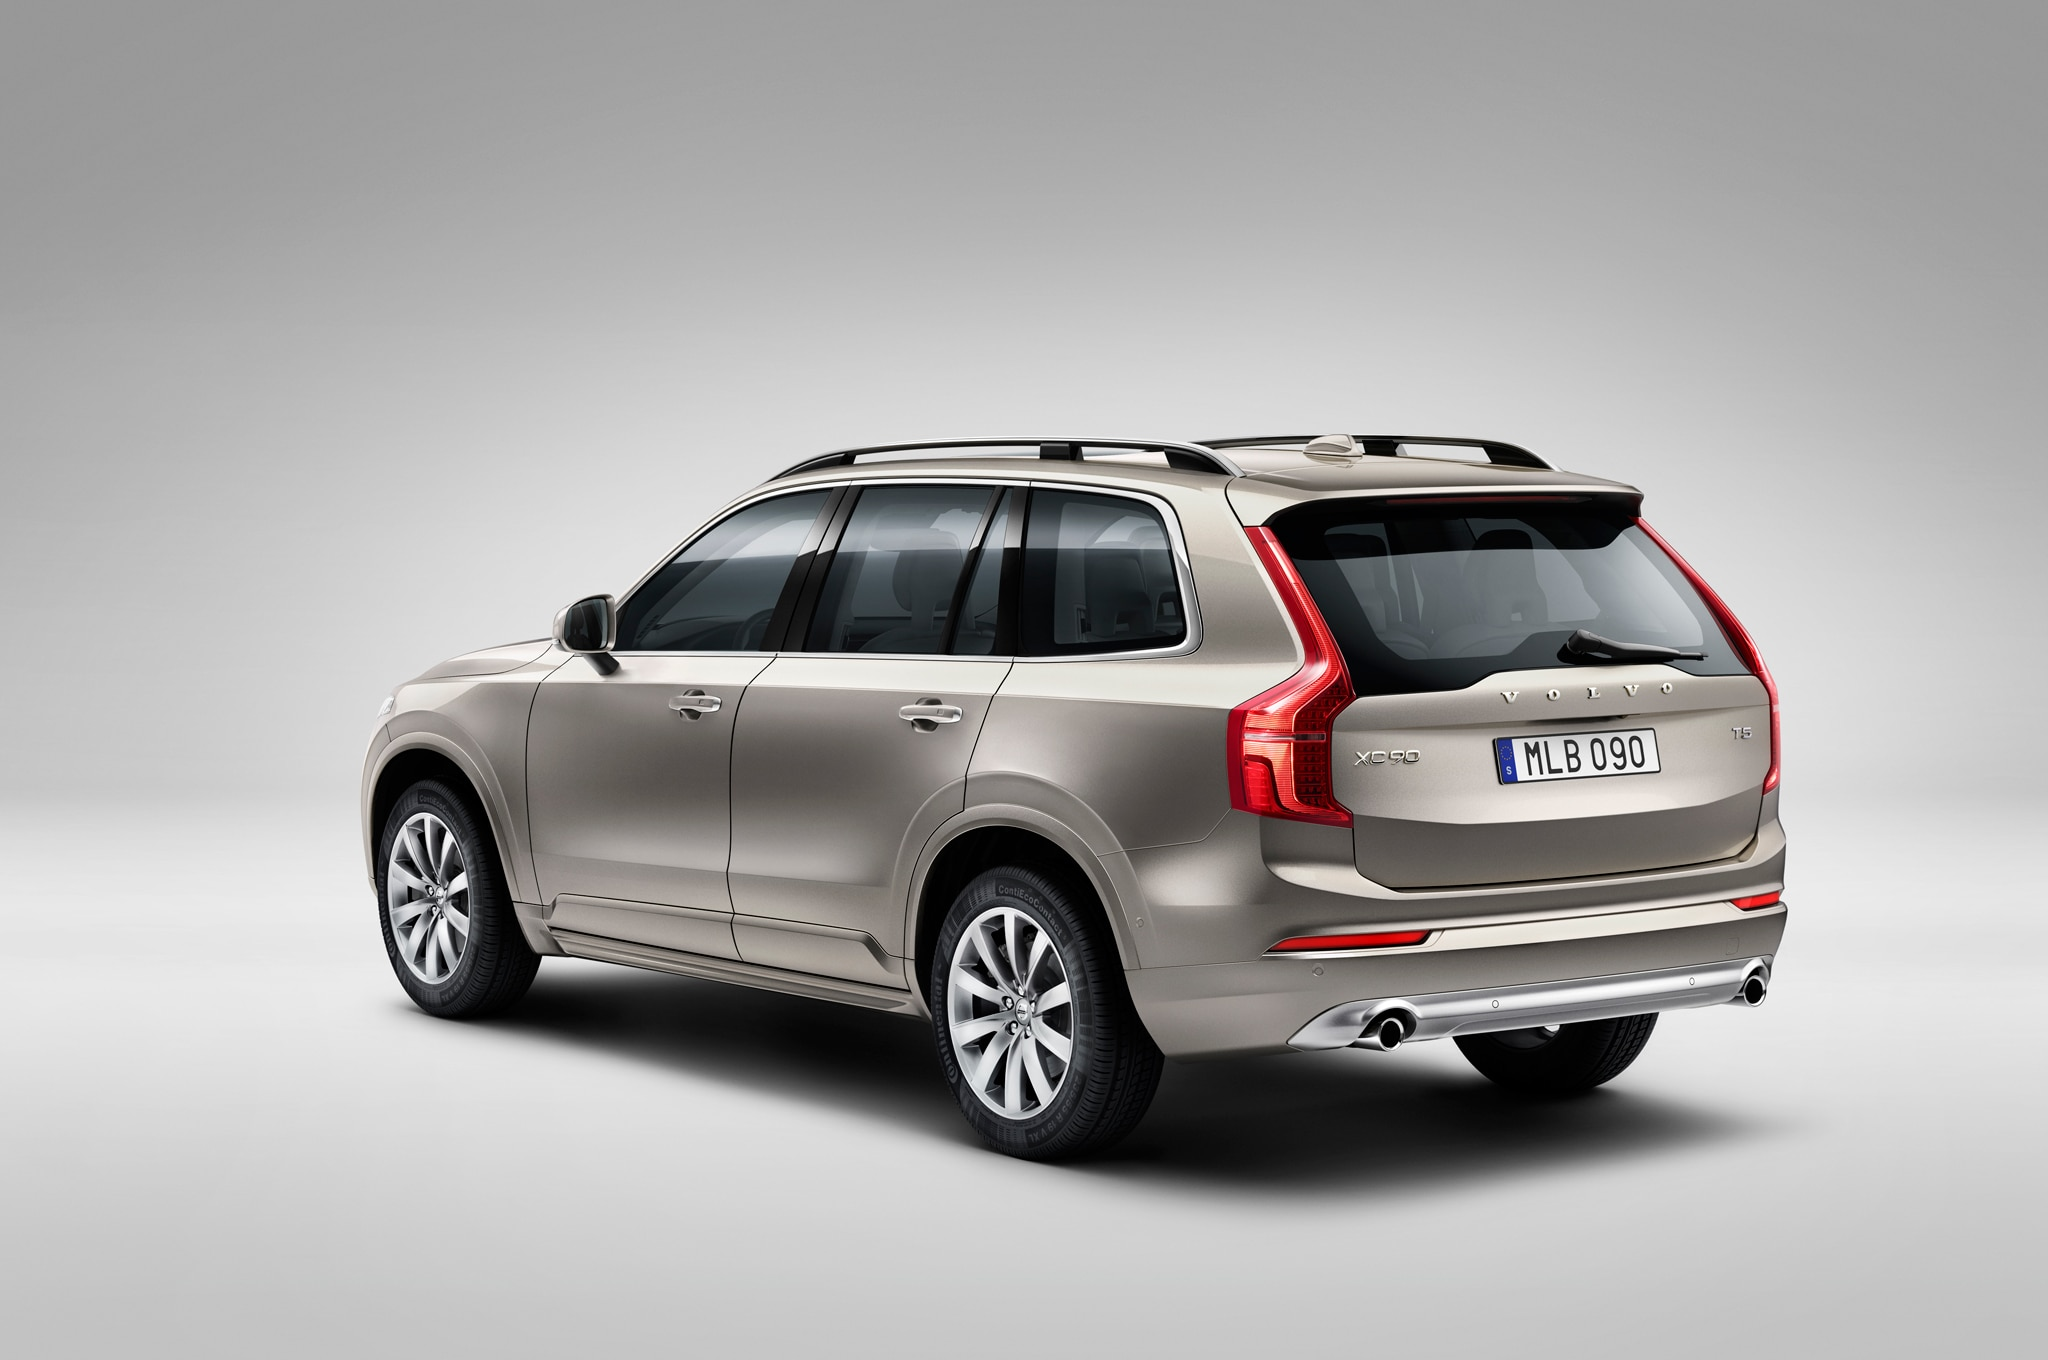 rdesign awd white colour geartronic advertdetail mileage model volvo year price